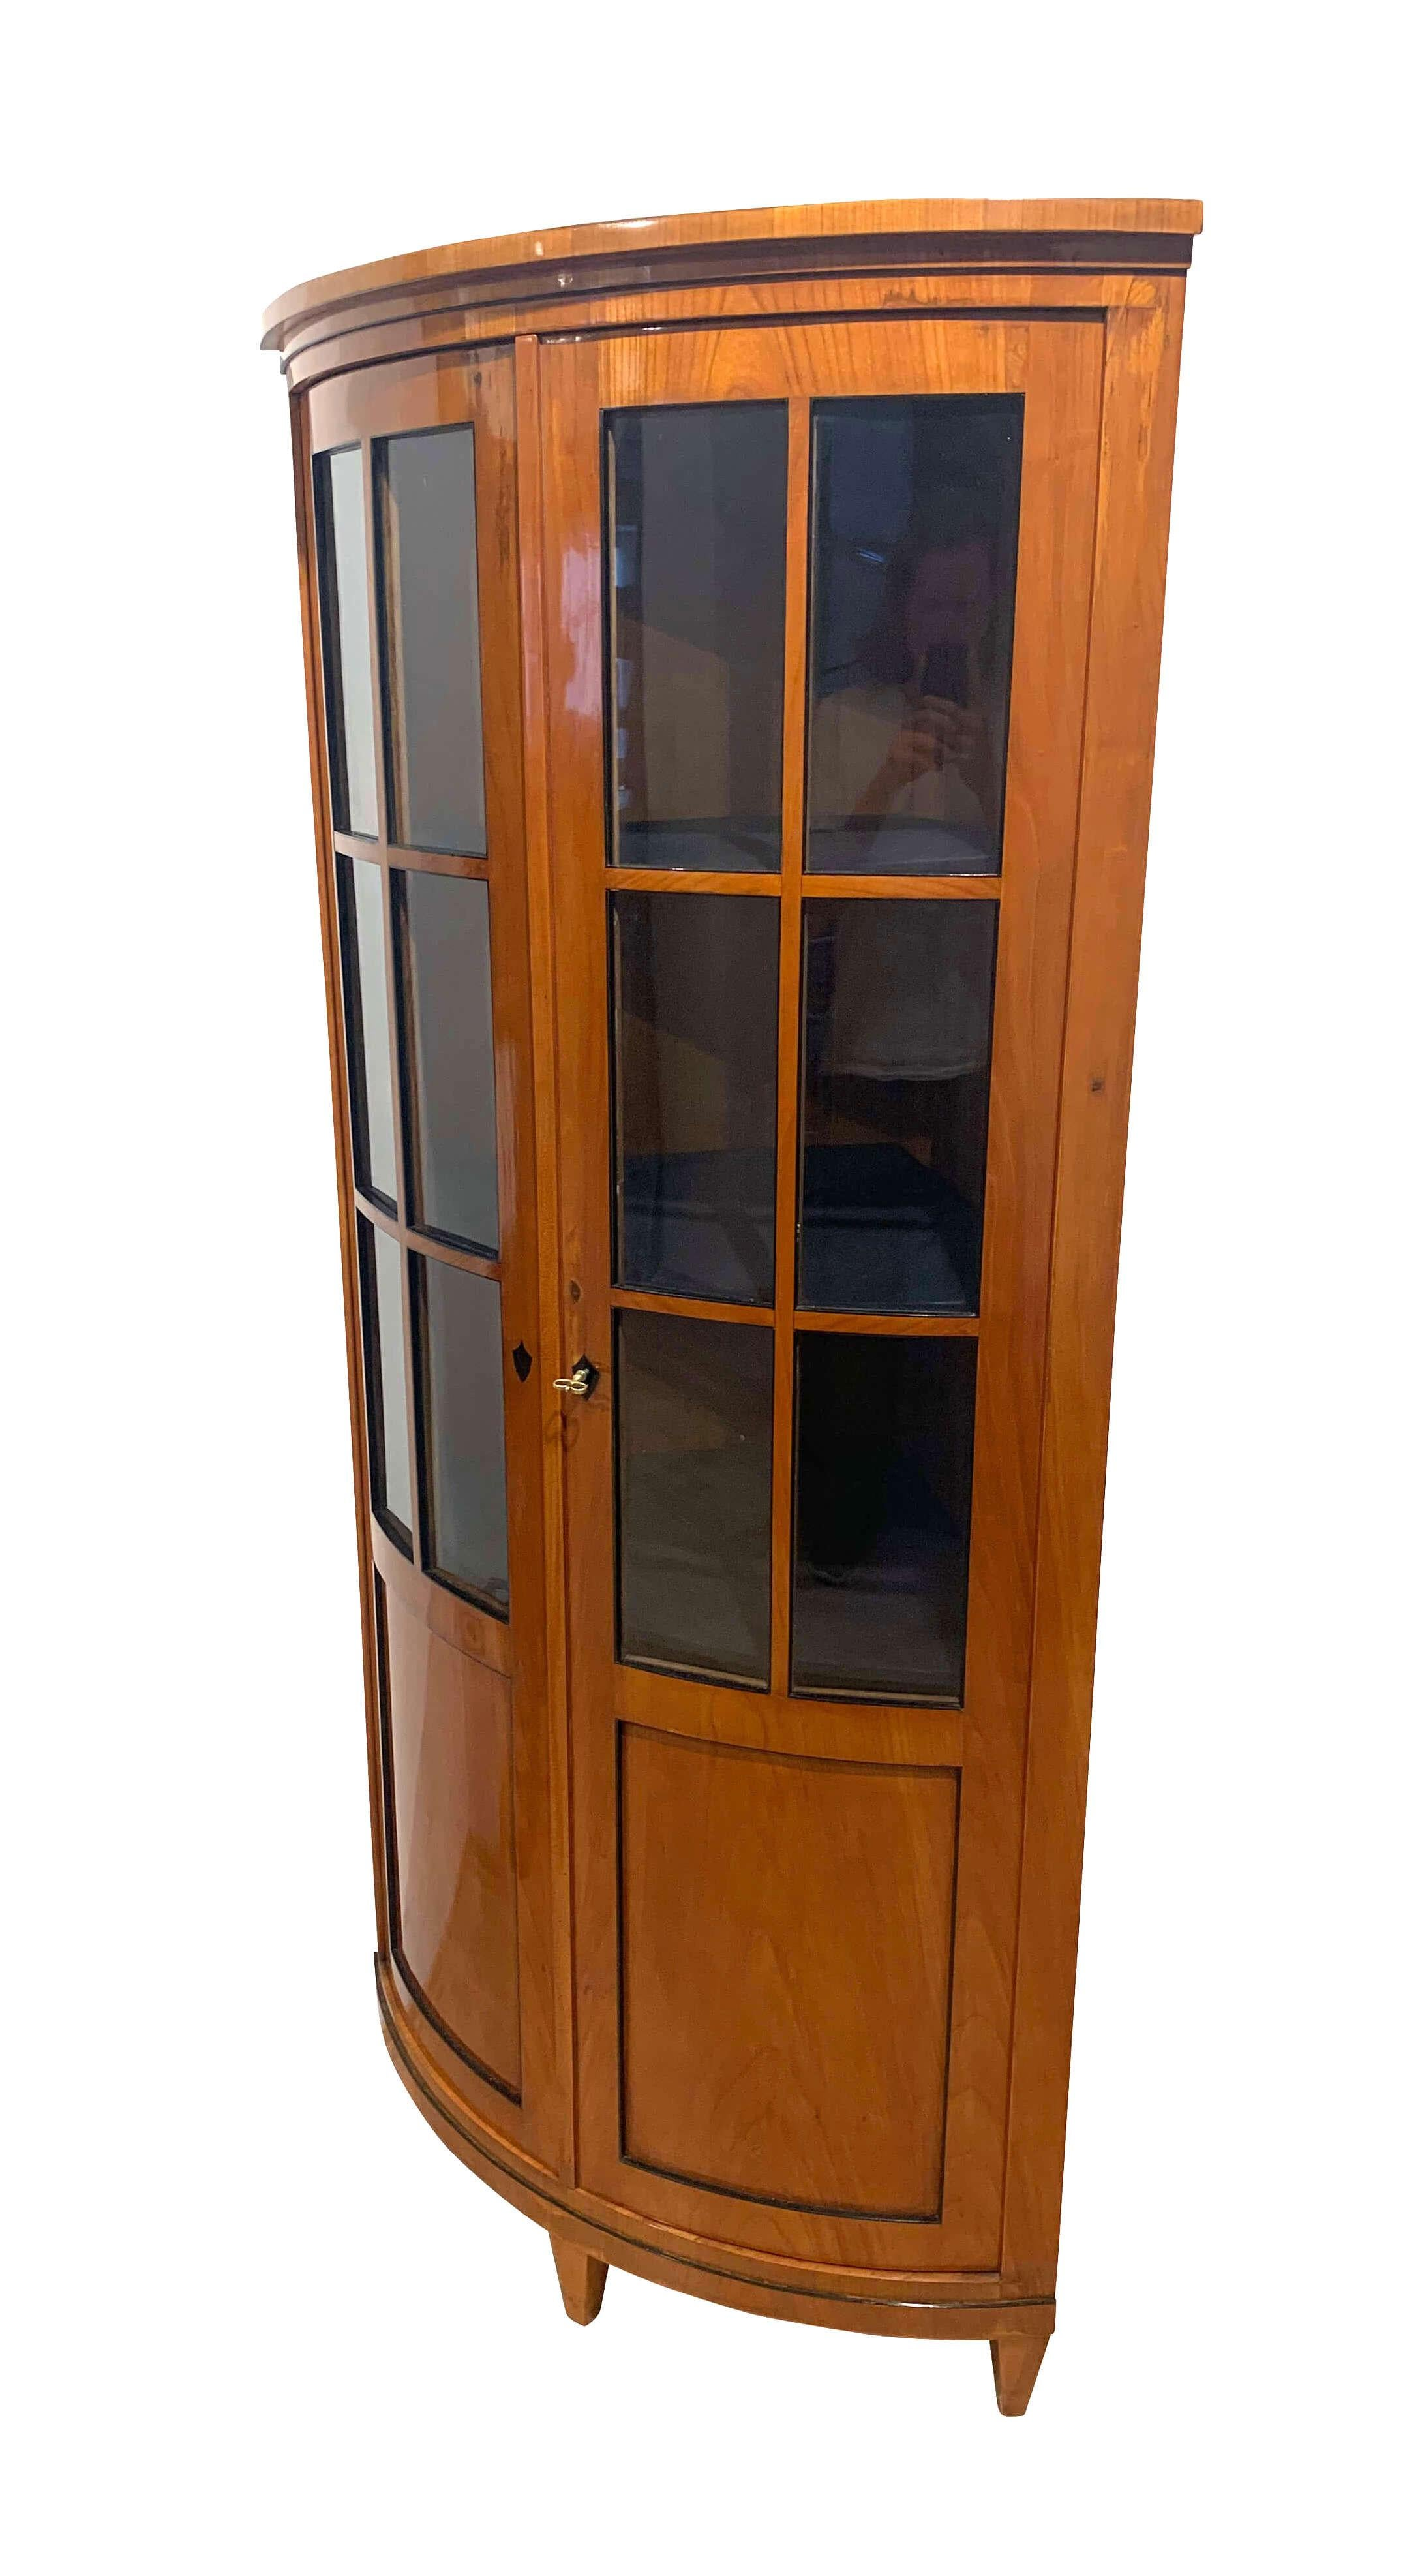 Eckvitrine Kirschbaum Biedermeier Corner Showcase Or Vitrine, Cherry Veneer, South Germany, Circa 1880 At 1stdibs